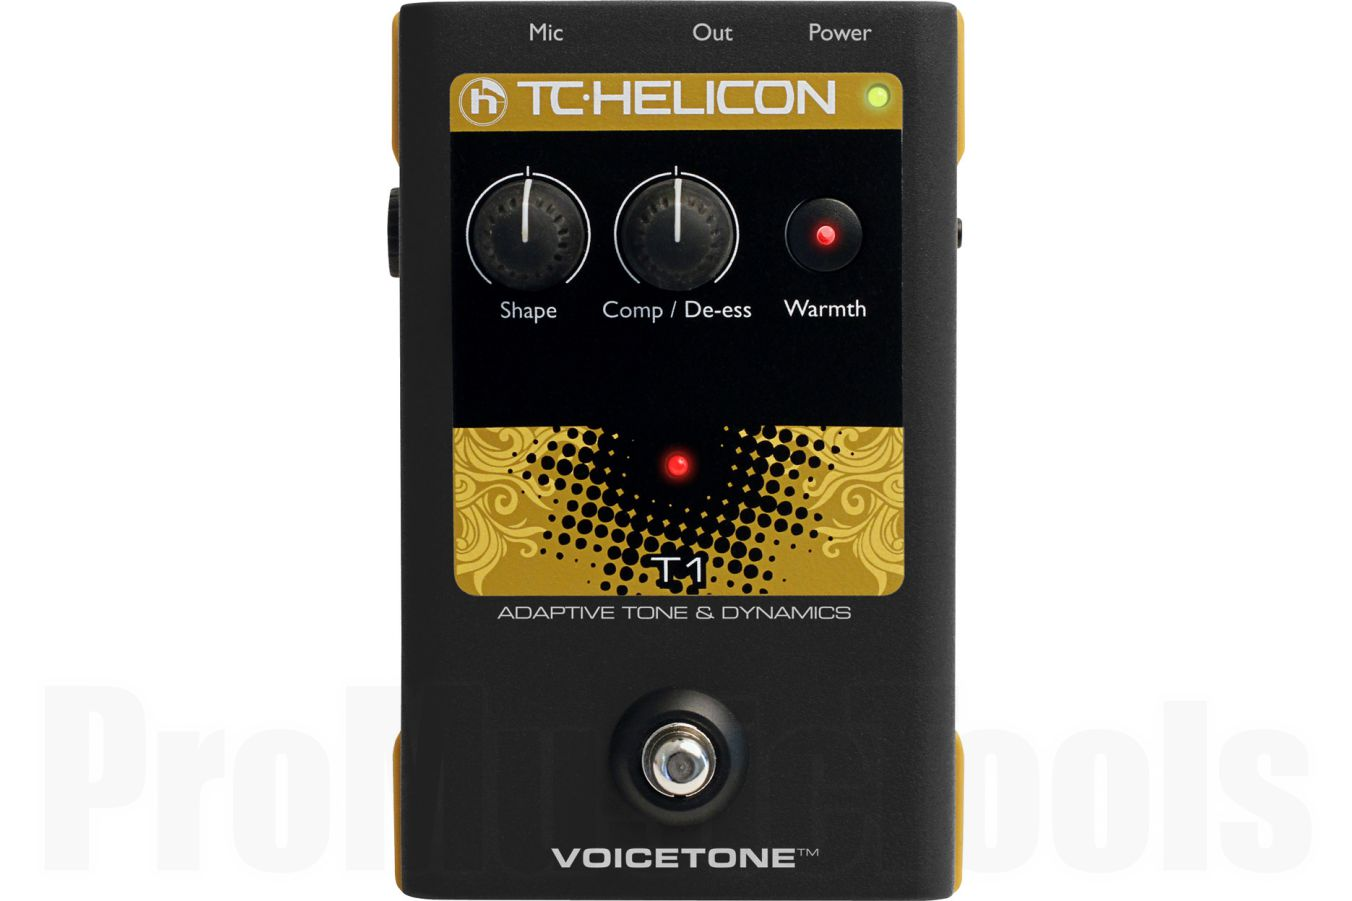 TC Helicon VoiceTone T1 Adaptive Tone & Dynamics - demo